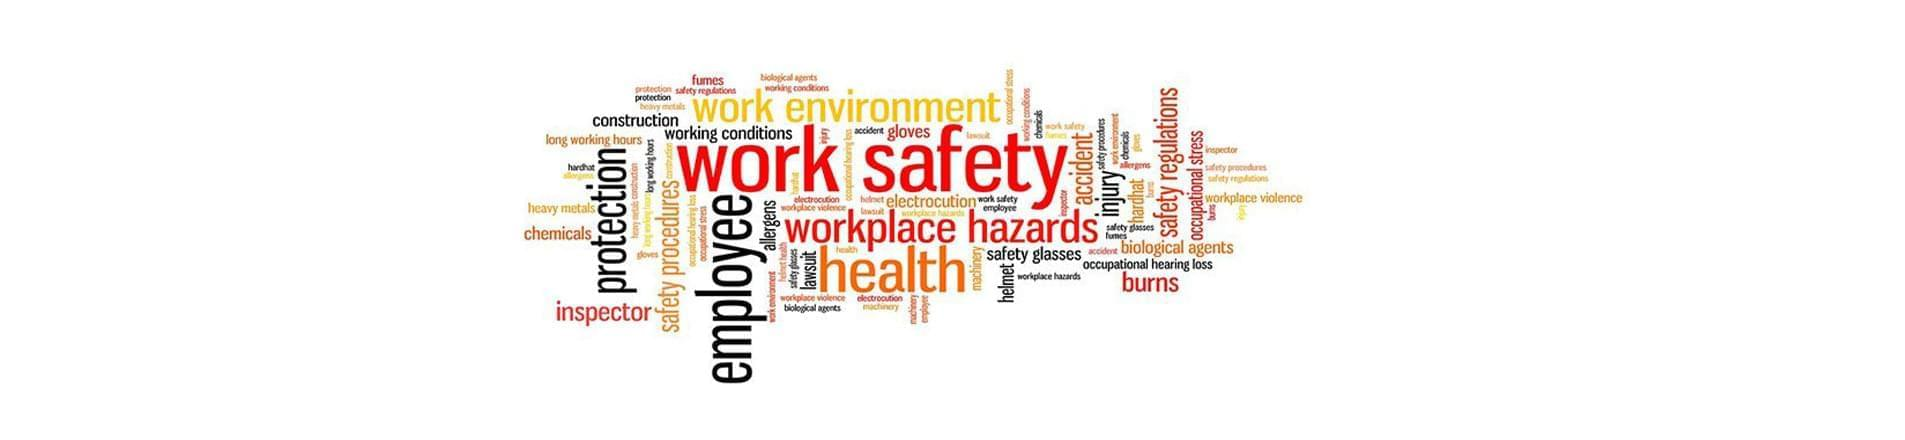 Health and Safety features in the workplace